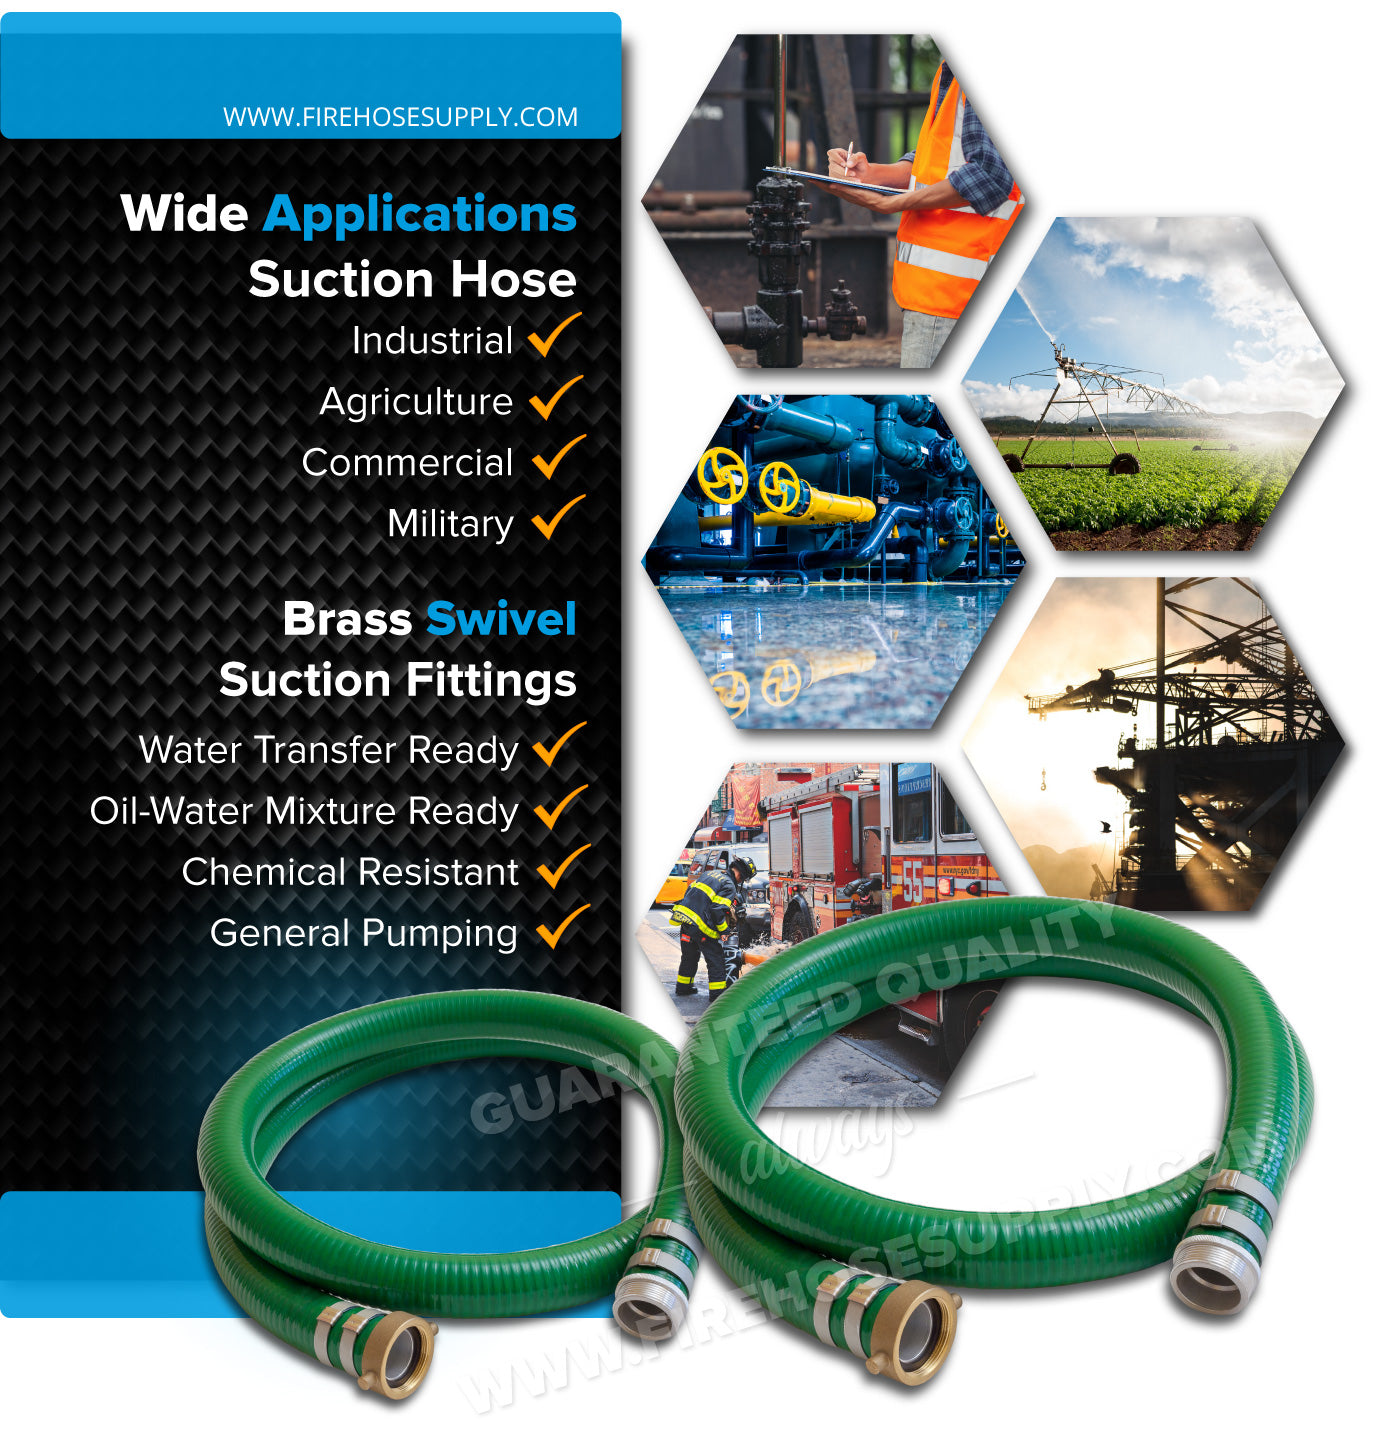 6 Inch Threaded Female x Male Green Suction Hose Wide Applications